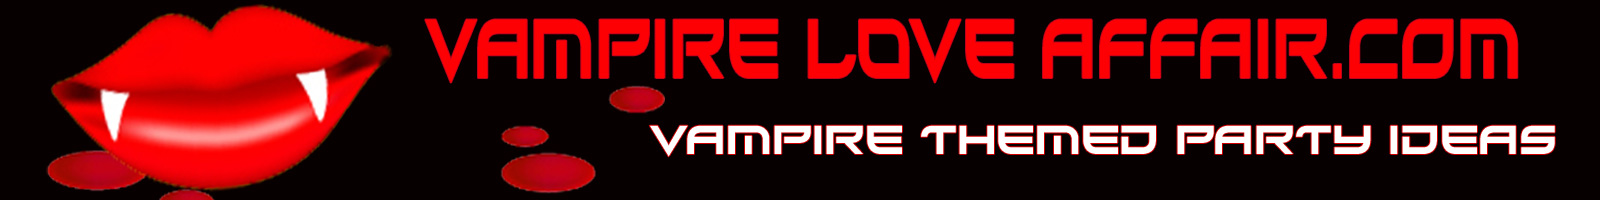 Vampire Love Affair